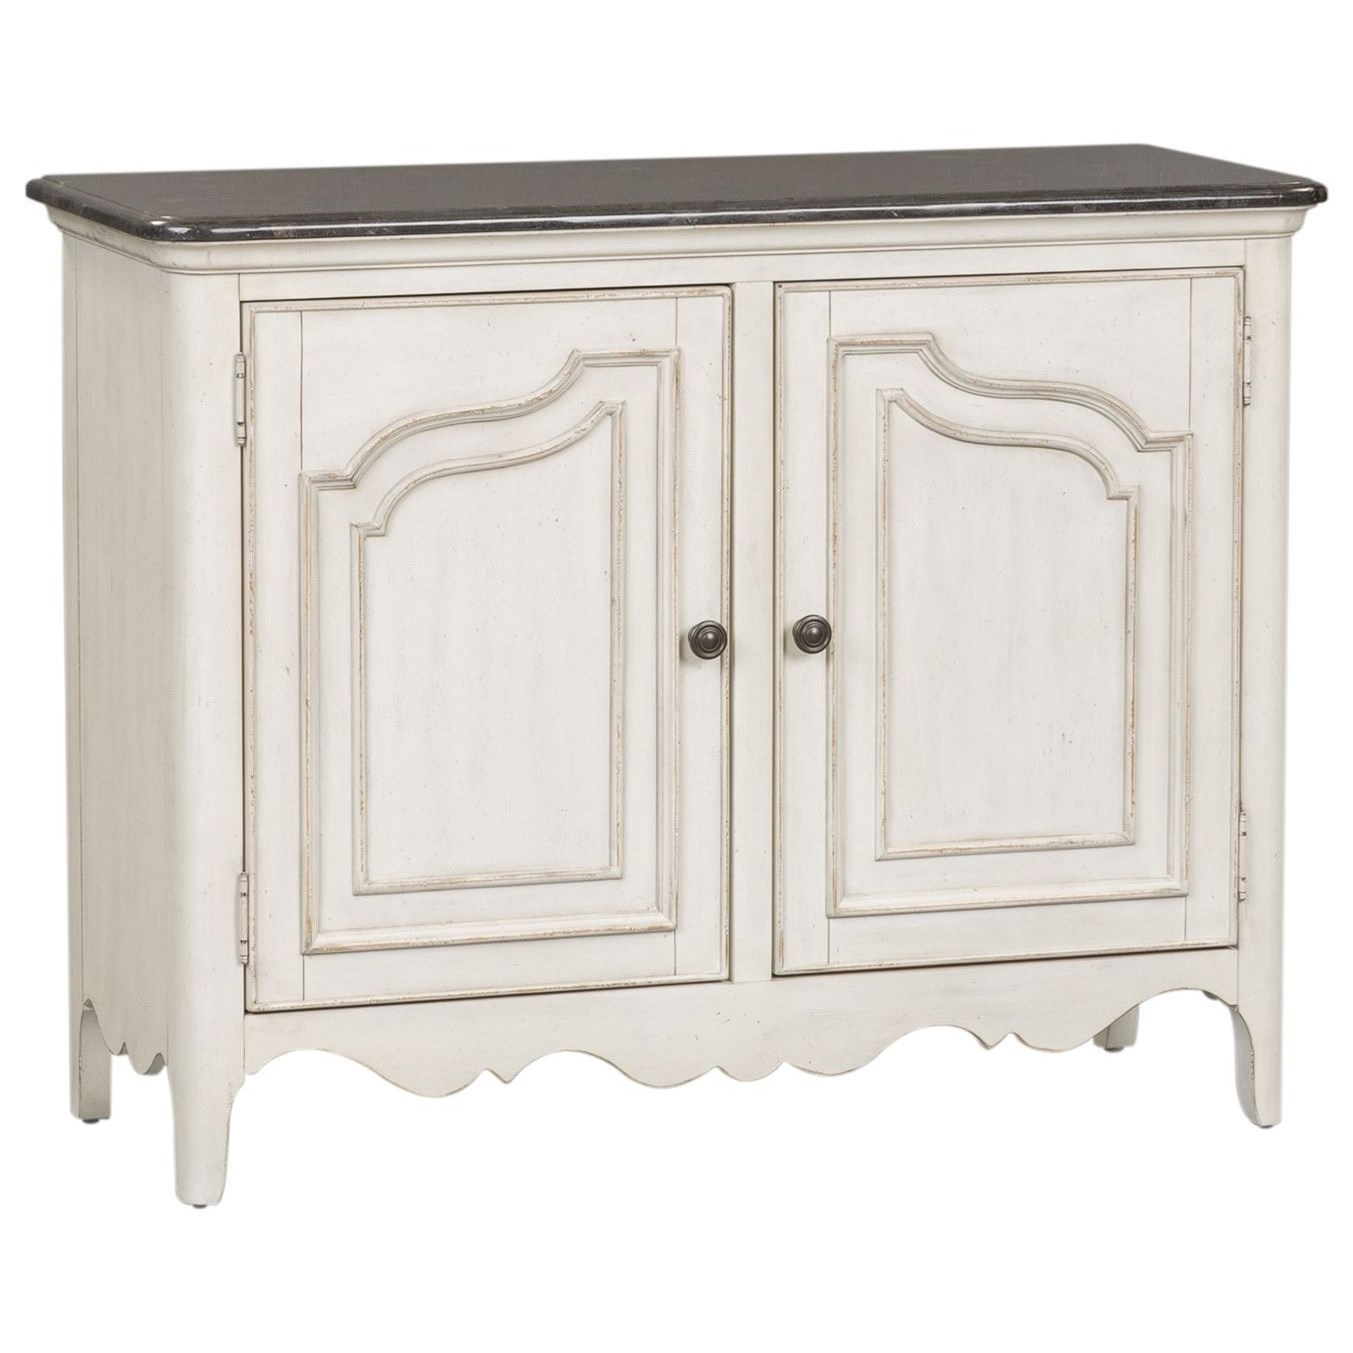 Parisian Marketplace 2 Door Chest by Liberty Furniture at Northeast Factory Direct